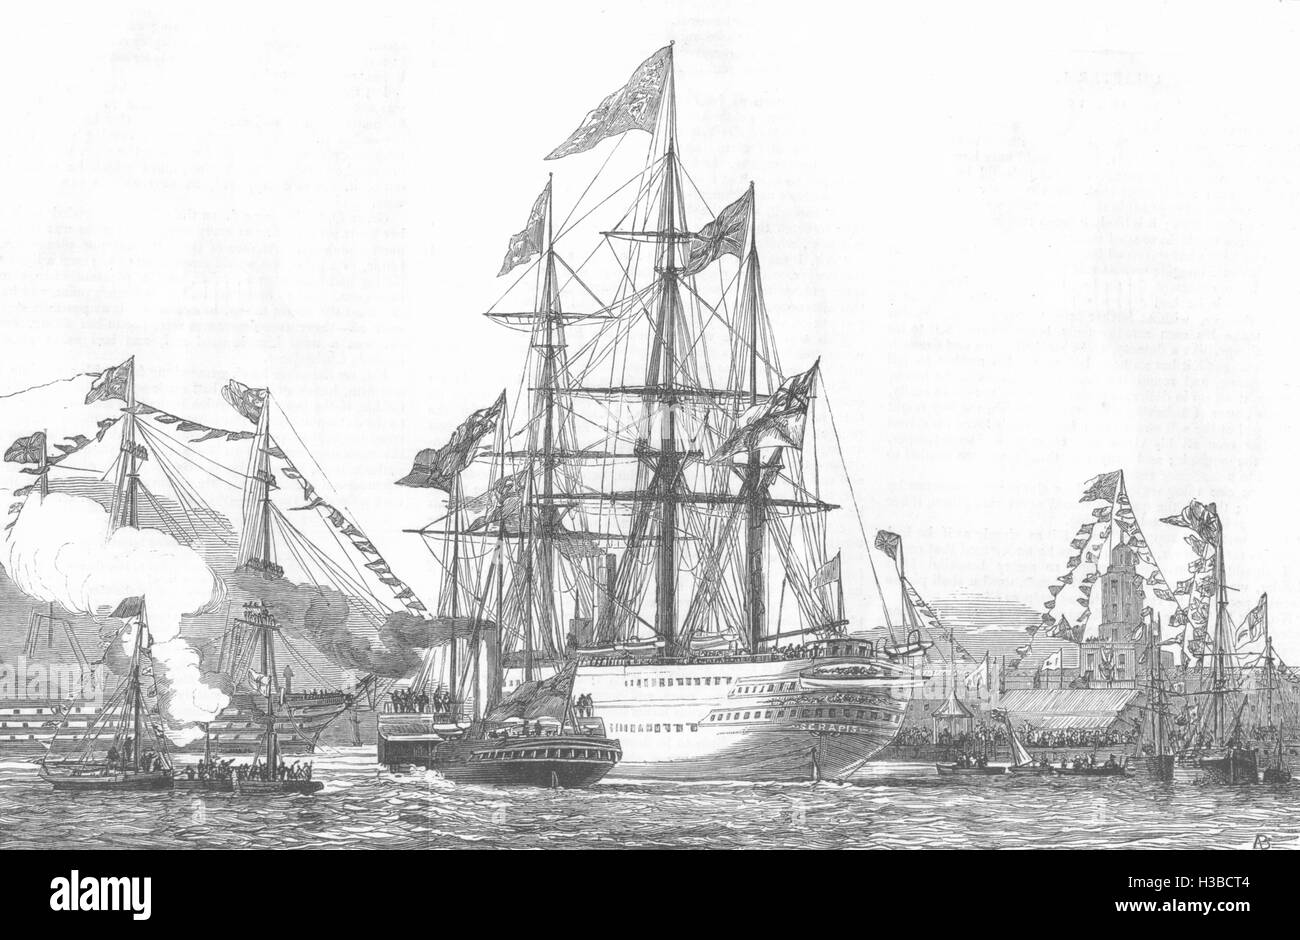 PORTSMOUTH / SHIPS The 'Duke Of Wellington' saluting 1876. The Graphic - Stock Image